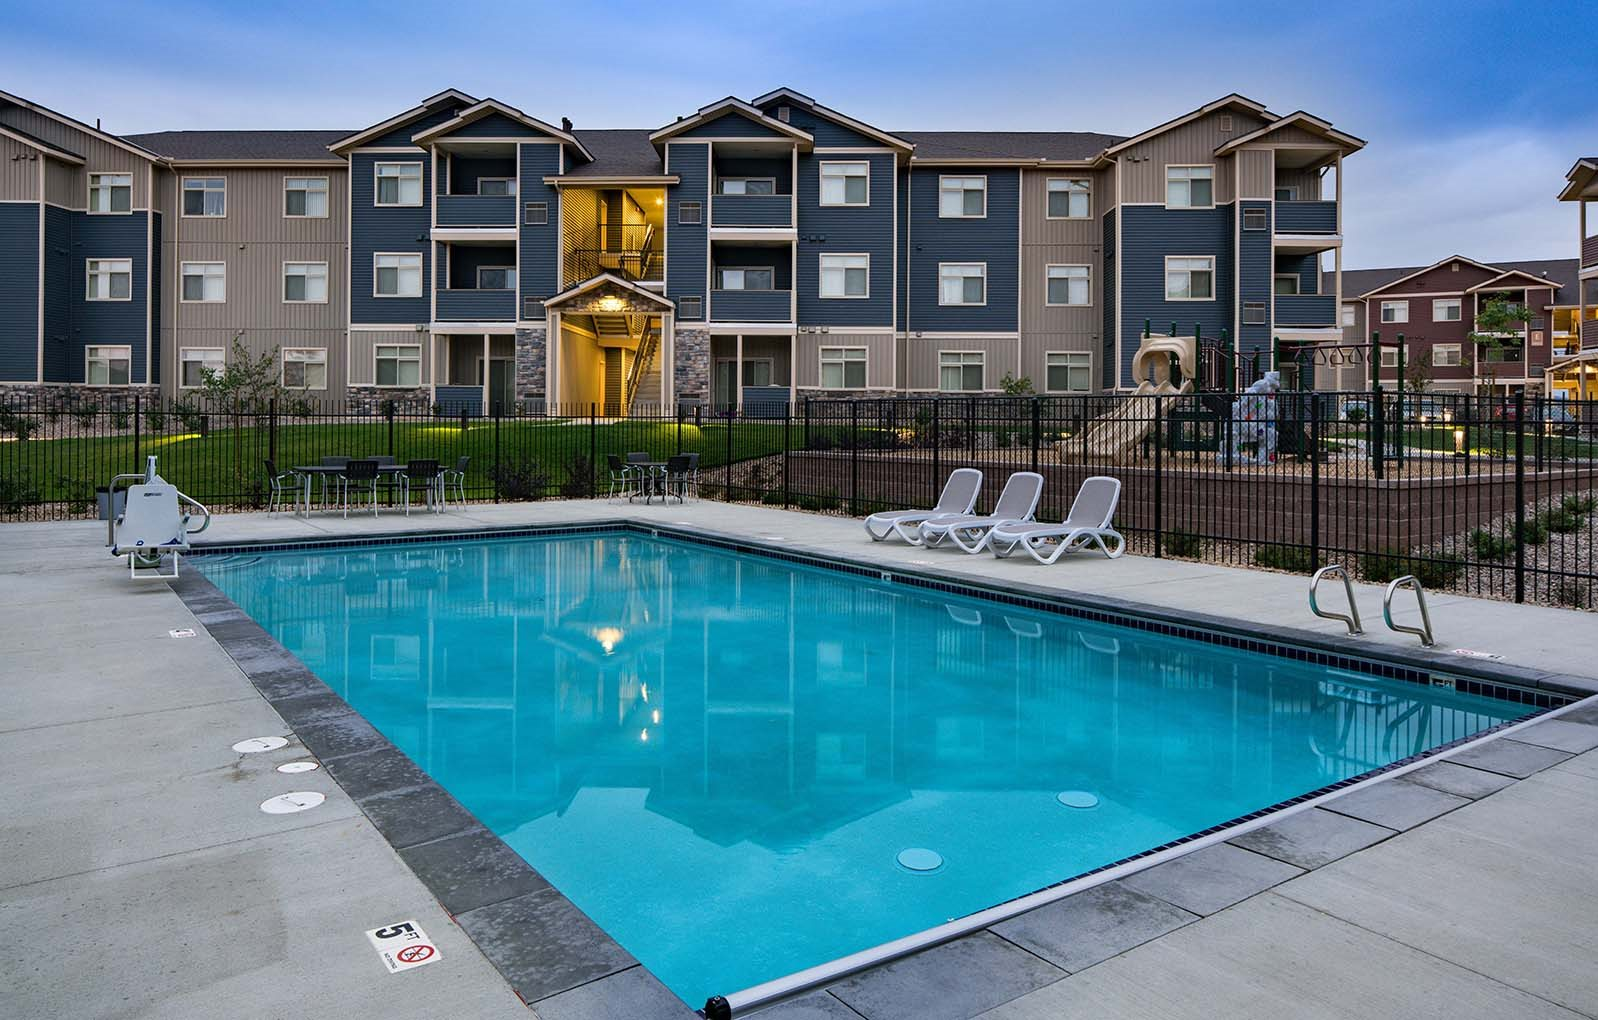 Pool with lounge chairs and apt buildings Copper Peak Apartments | Longmont, CO 99337